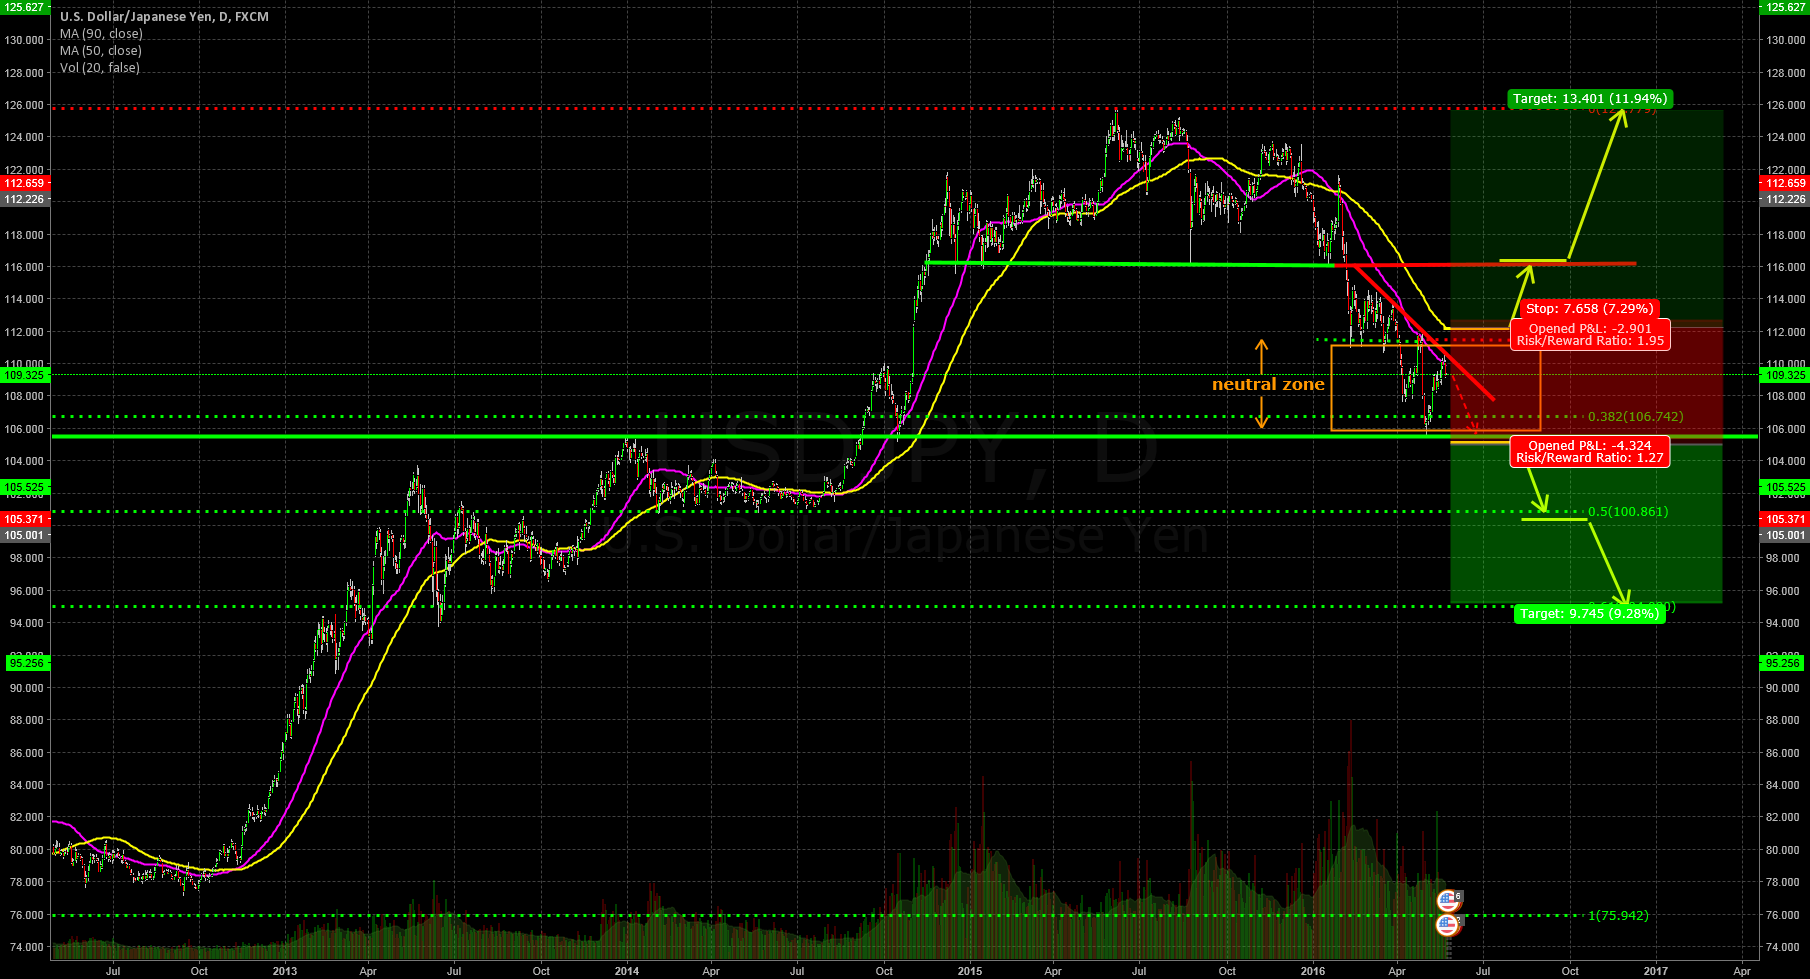 USDJPY  no action needed at the moment